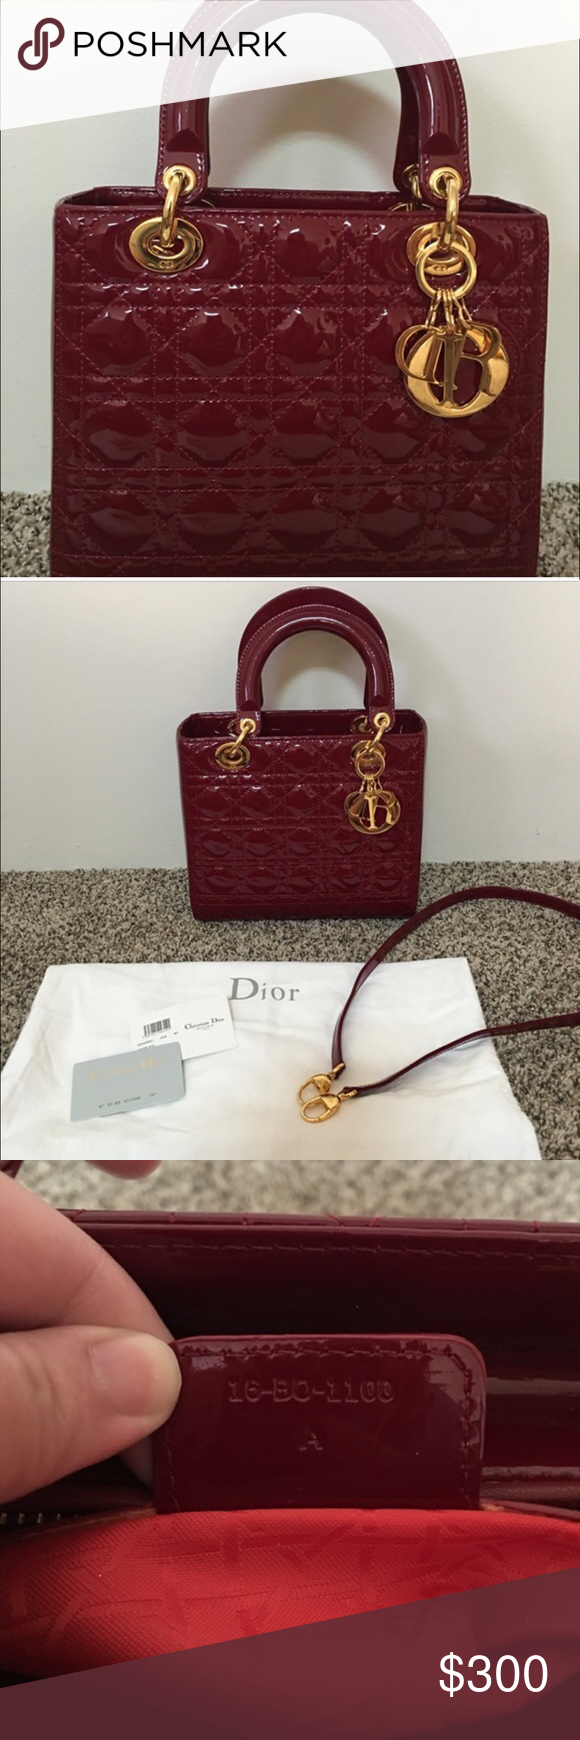 Lady Dior handbag Gorgeous handbag. Bought on here but price reflects. Comes with certification and dust bag. No low ball. I paid $400 for it. Never used no flaws. Dior Bags Shoulder Bags